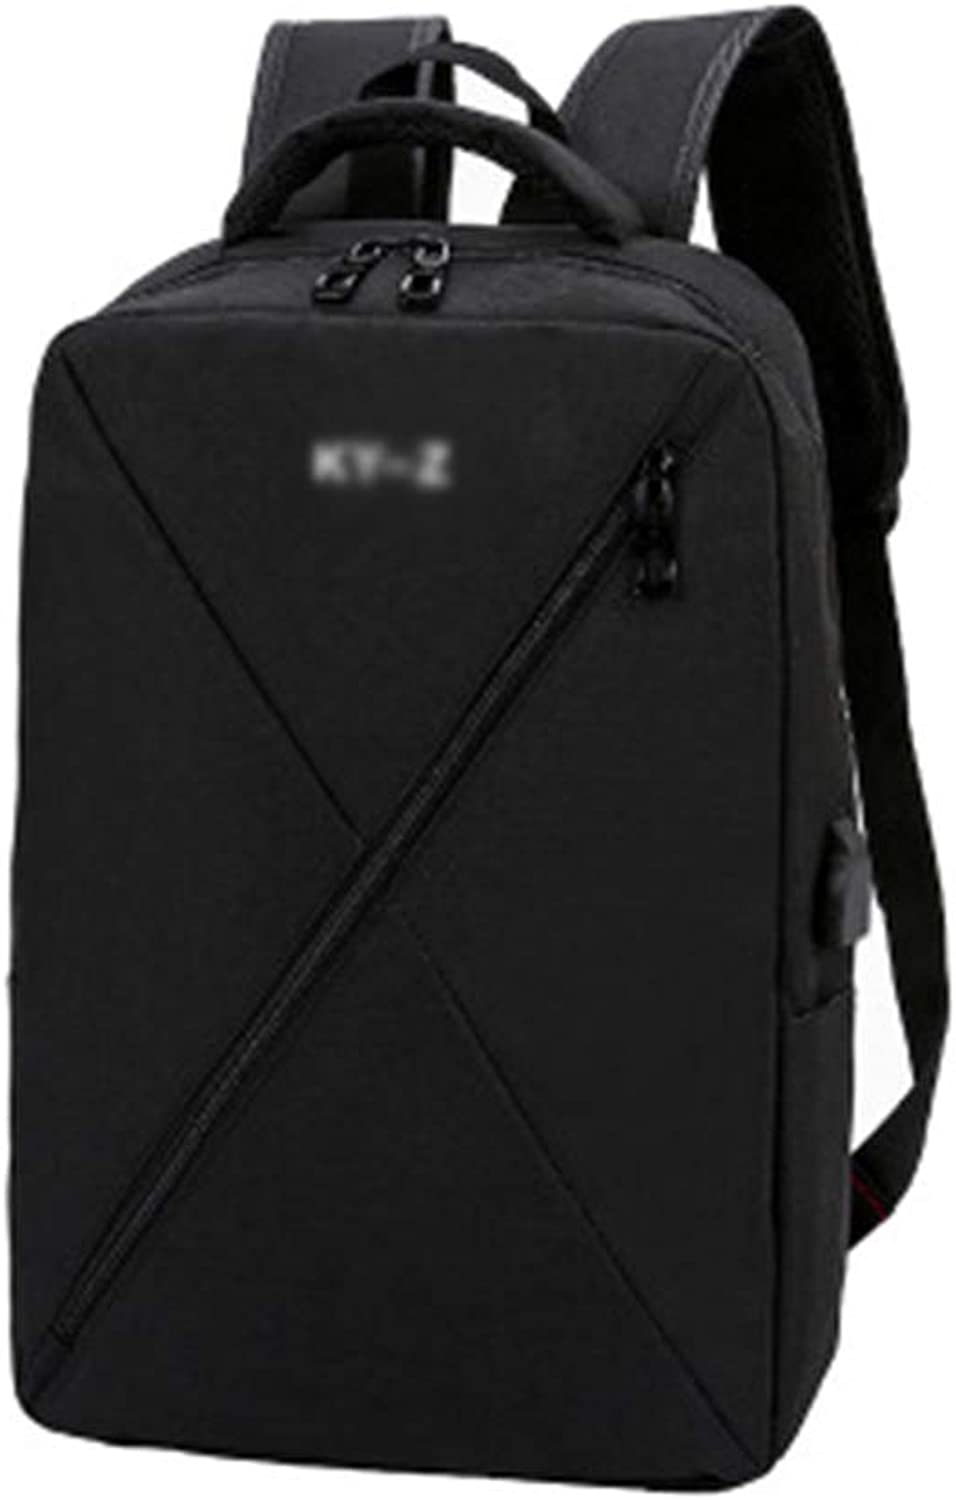 Computer Backpack, Fashion School Backpack Laptop Bag Waterproof Nylon Casual Backpack with USB Charging Port,Suitable for The 15.6Inch Computer of The Tourism Business